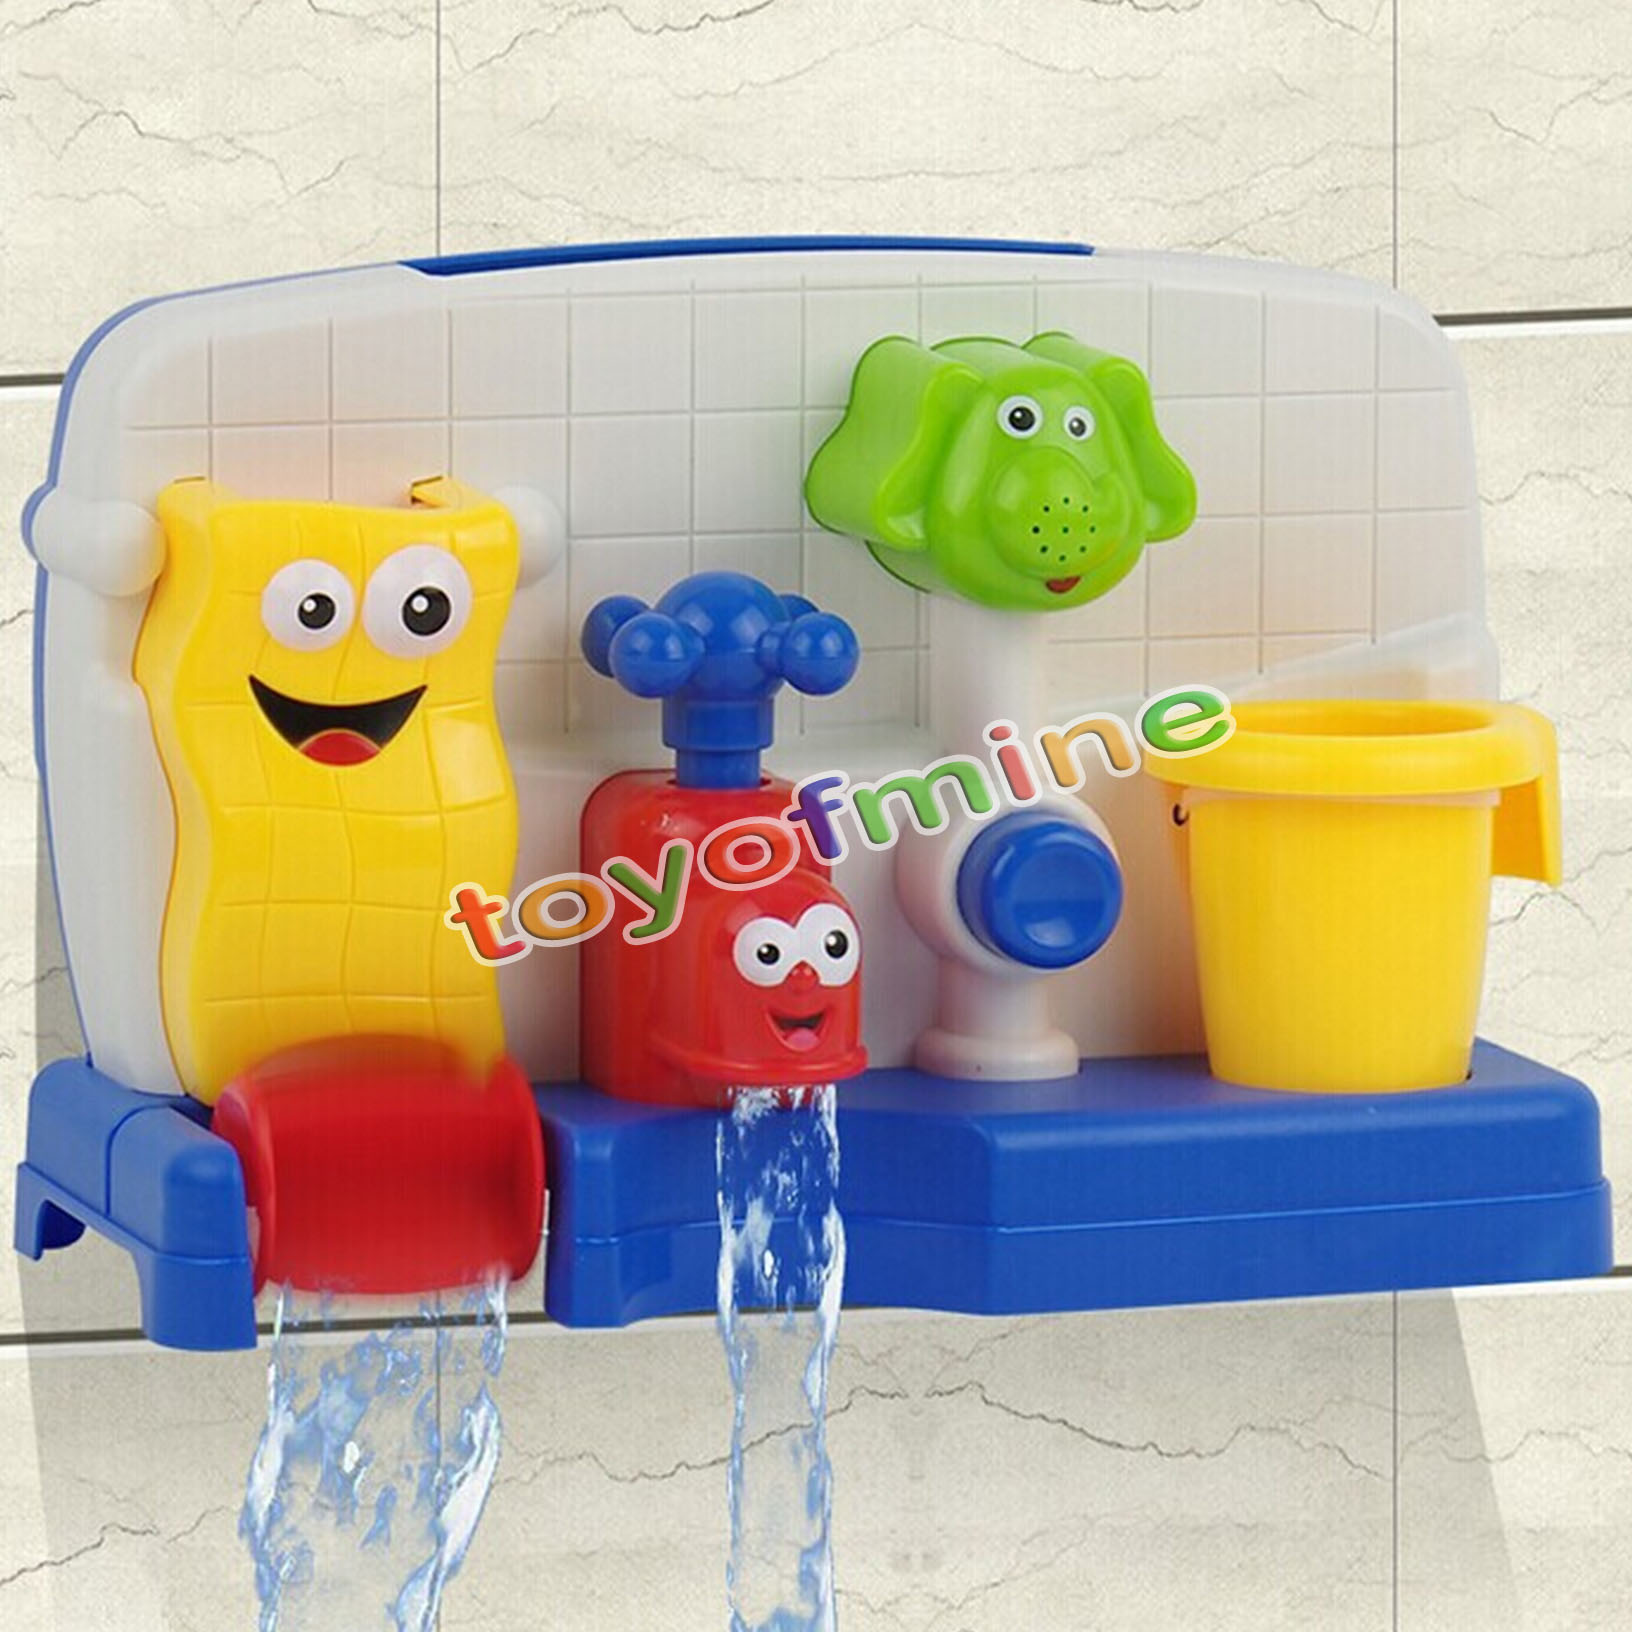 children bathing watertruck faucet spout cover baby tub water toddler bath toys ebay. Black Bedroom Furniture Sets. Home Design Ideas